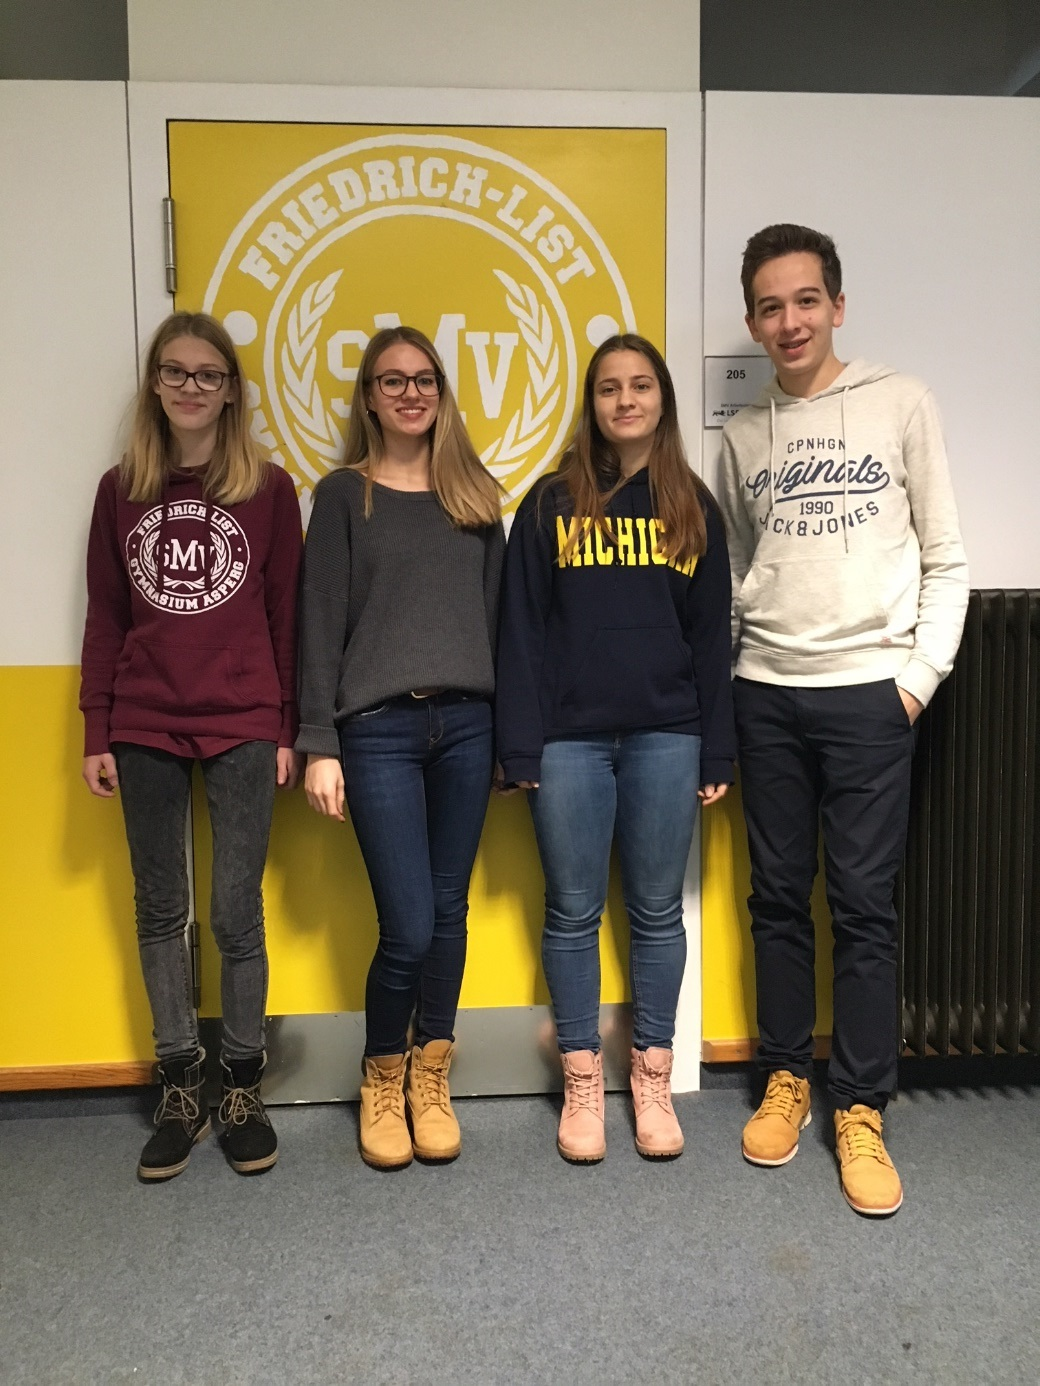 SMV Pool-Referat am Friedrich-List-Gymnasium Asperg 2017/18